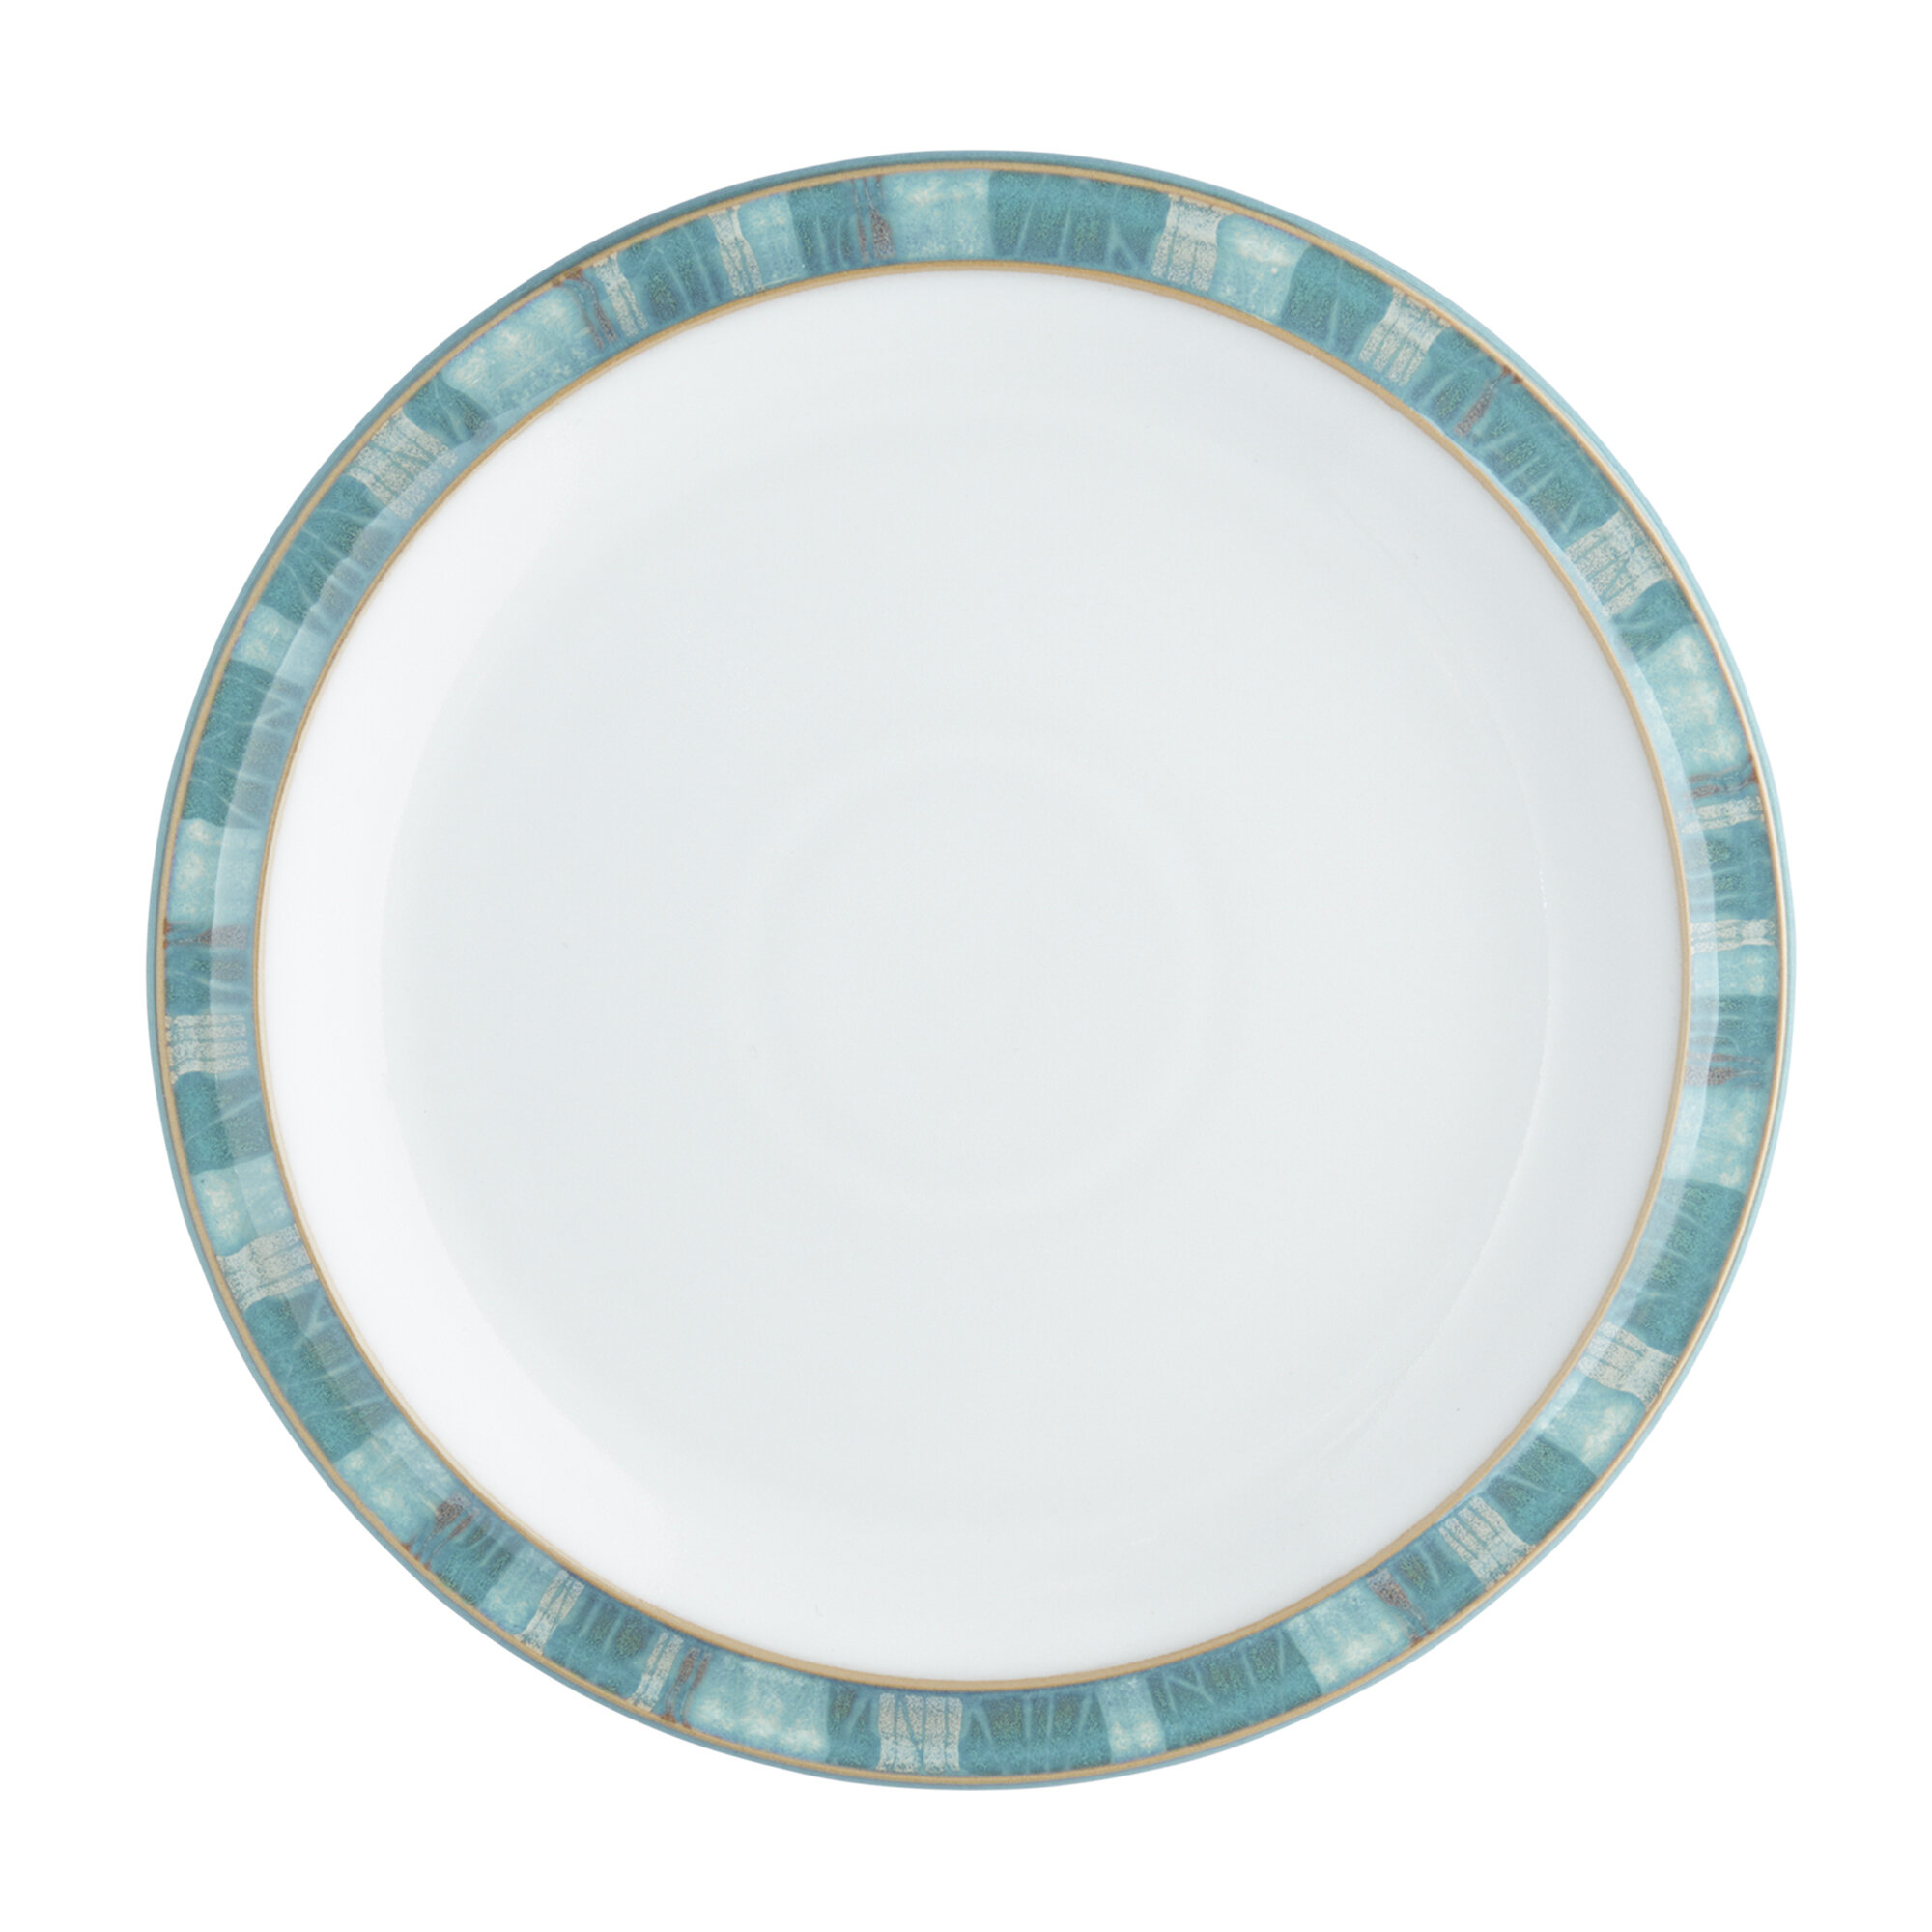 sc 1 st  Wayfair : chef plates sets - pezcame.com